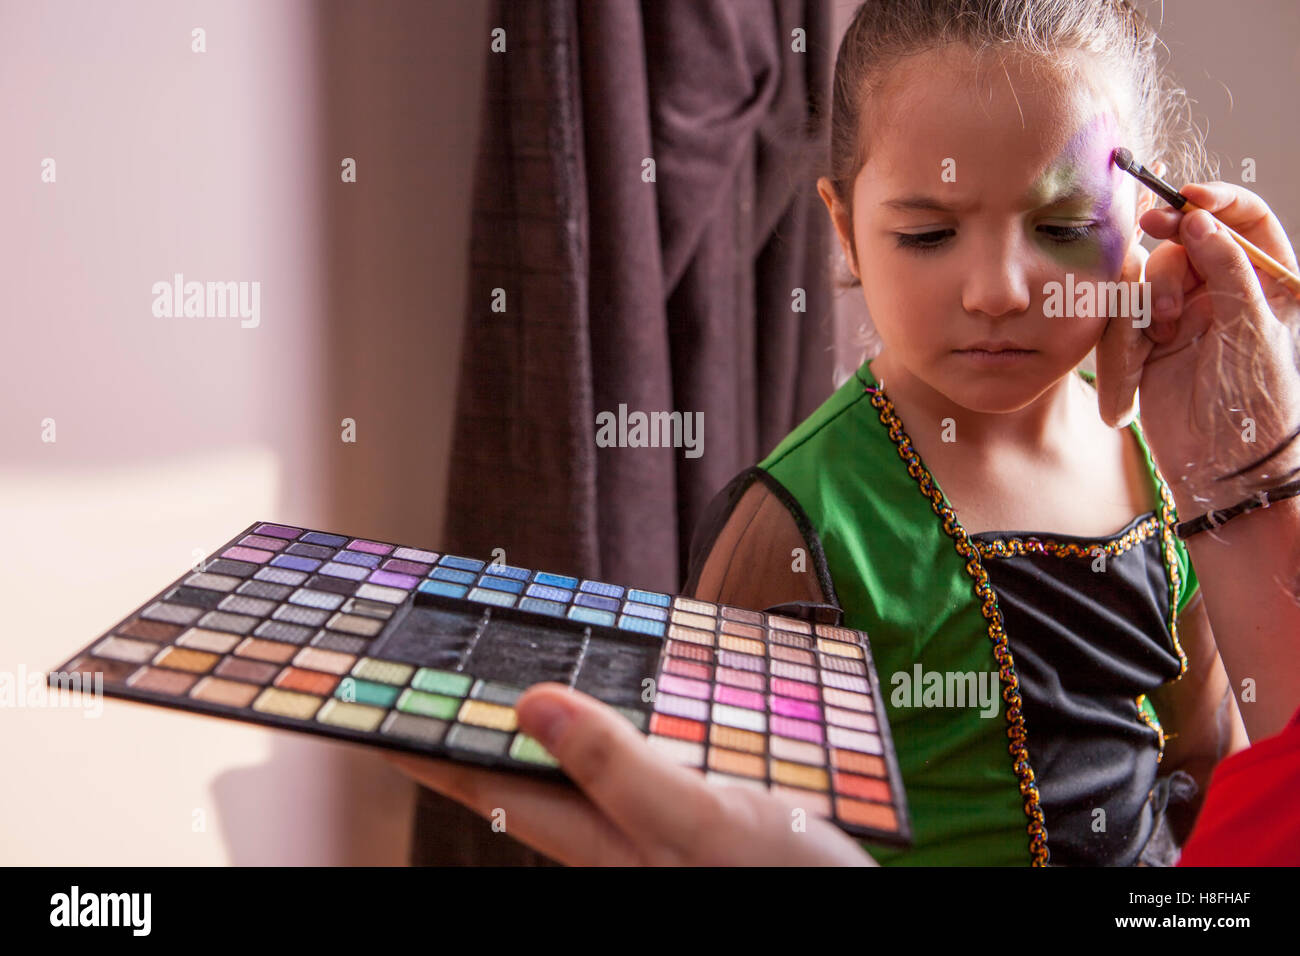 Little cute girl making facepaint before halloween party. The make-up artist is applying some colors - Stock Image